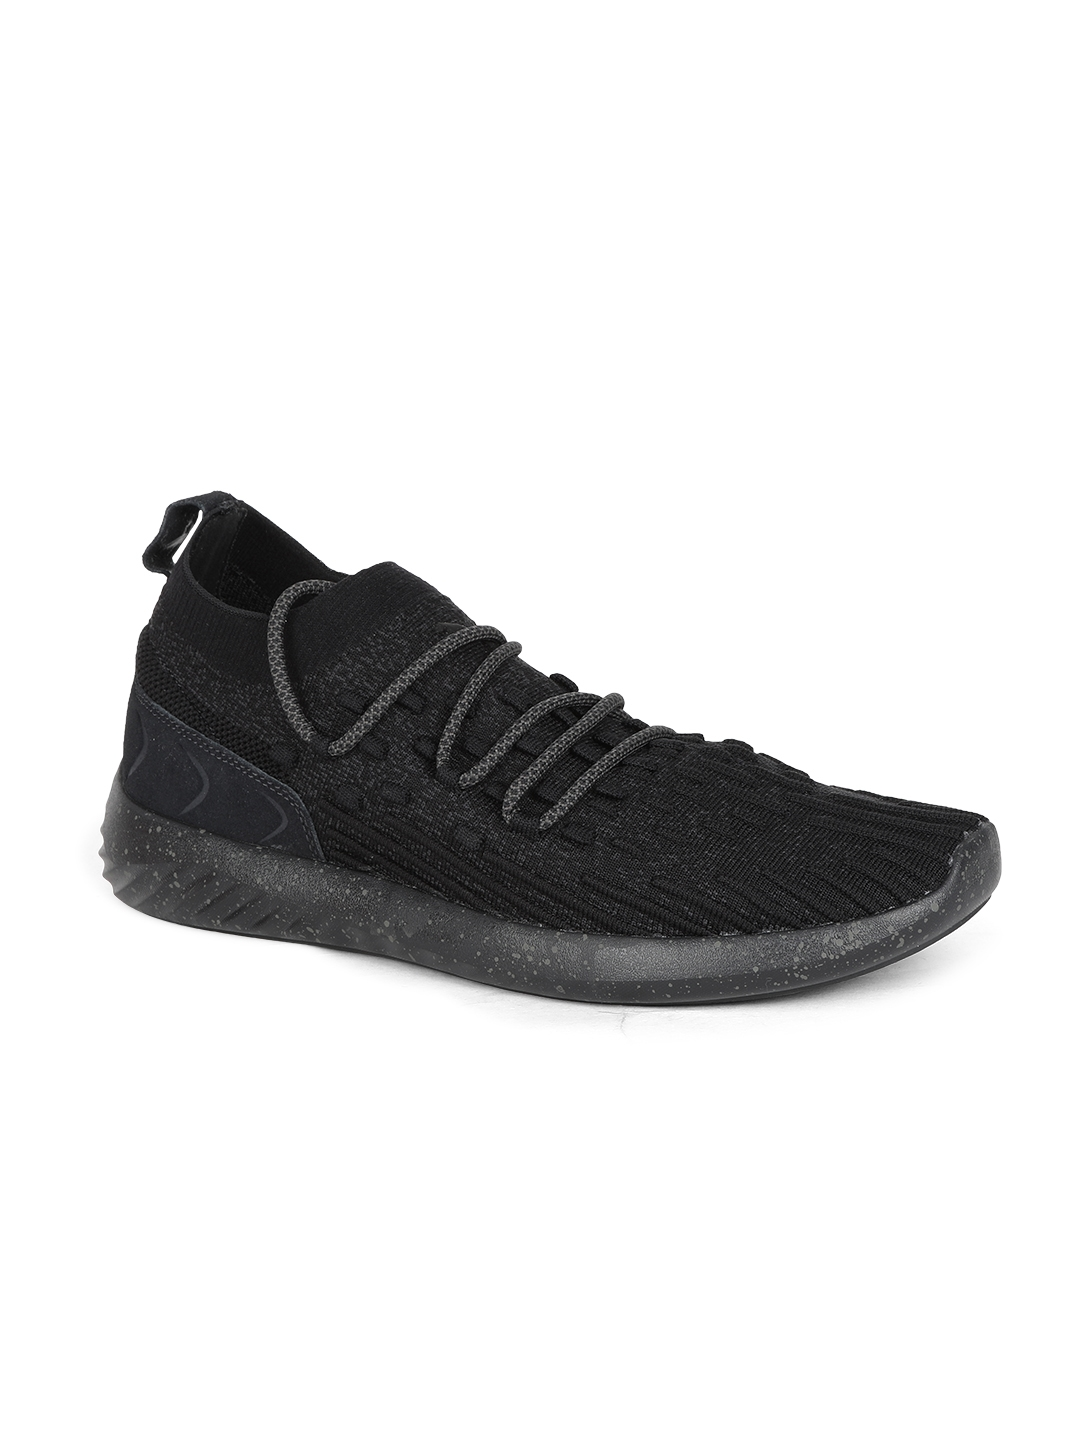 Puma Men Black BMW MMS SpeedCat Fusefit Sneakers